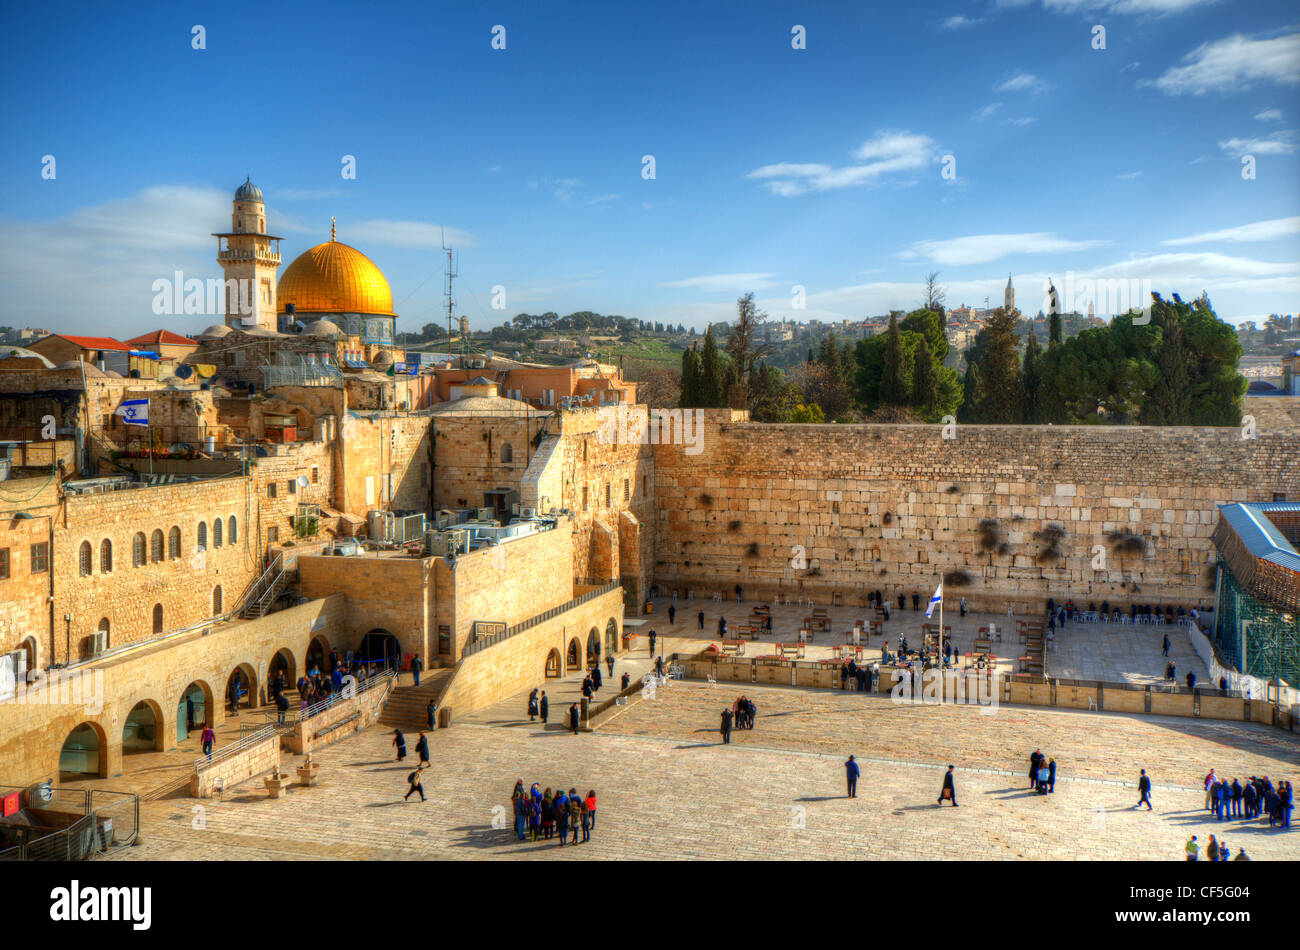 Old City of Jerusalem, Israel at the Western Wall and Temple Mount. - Stock Image